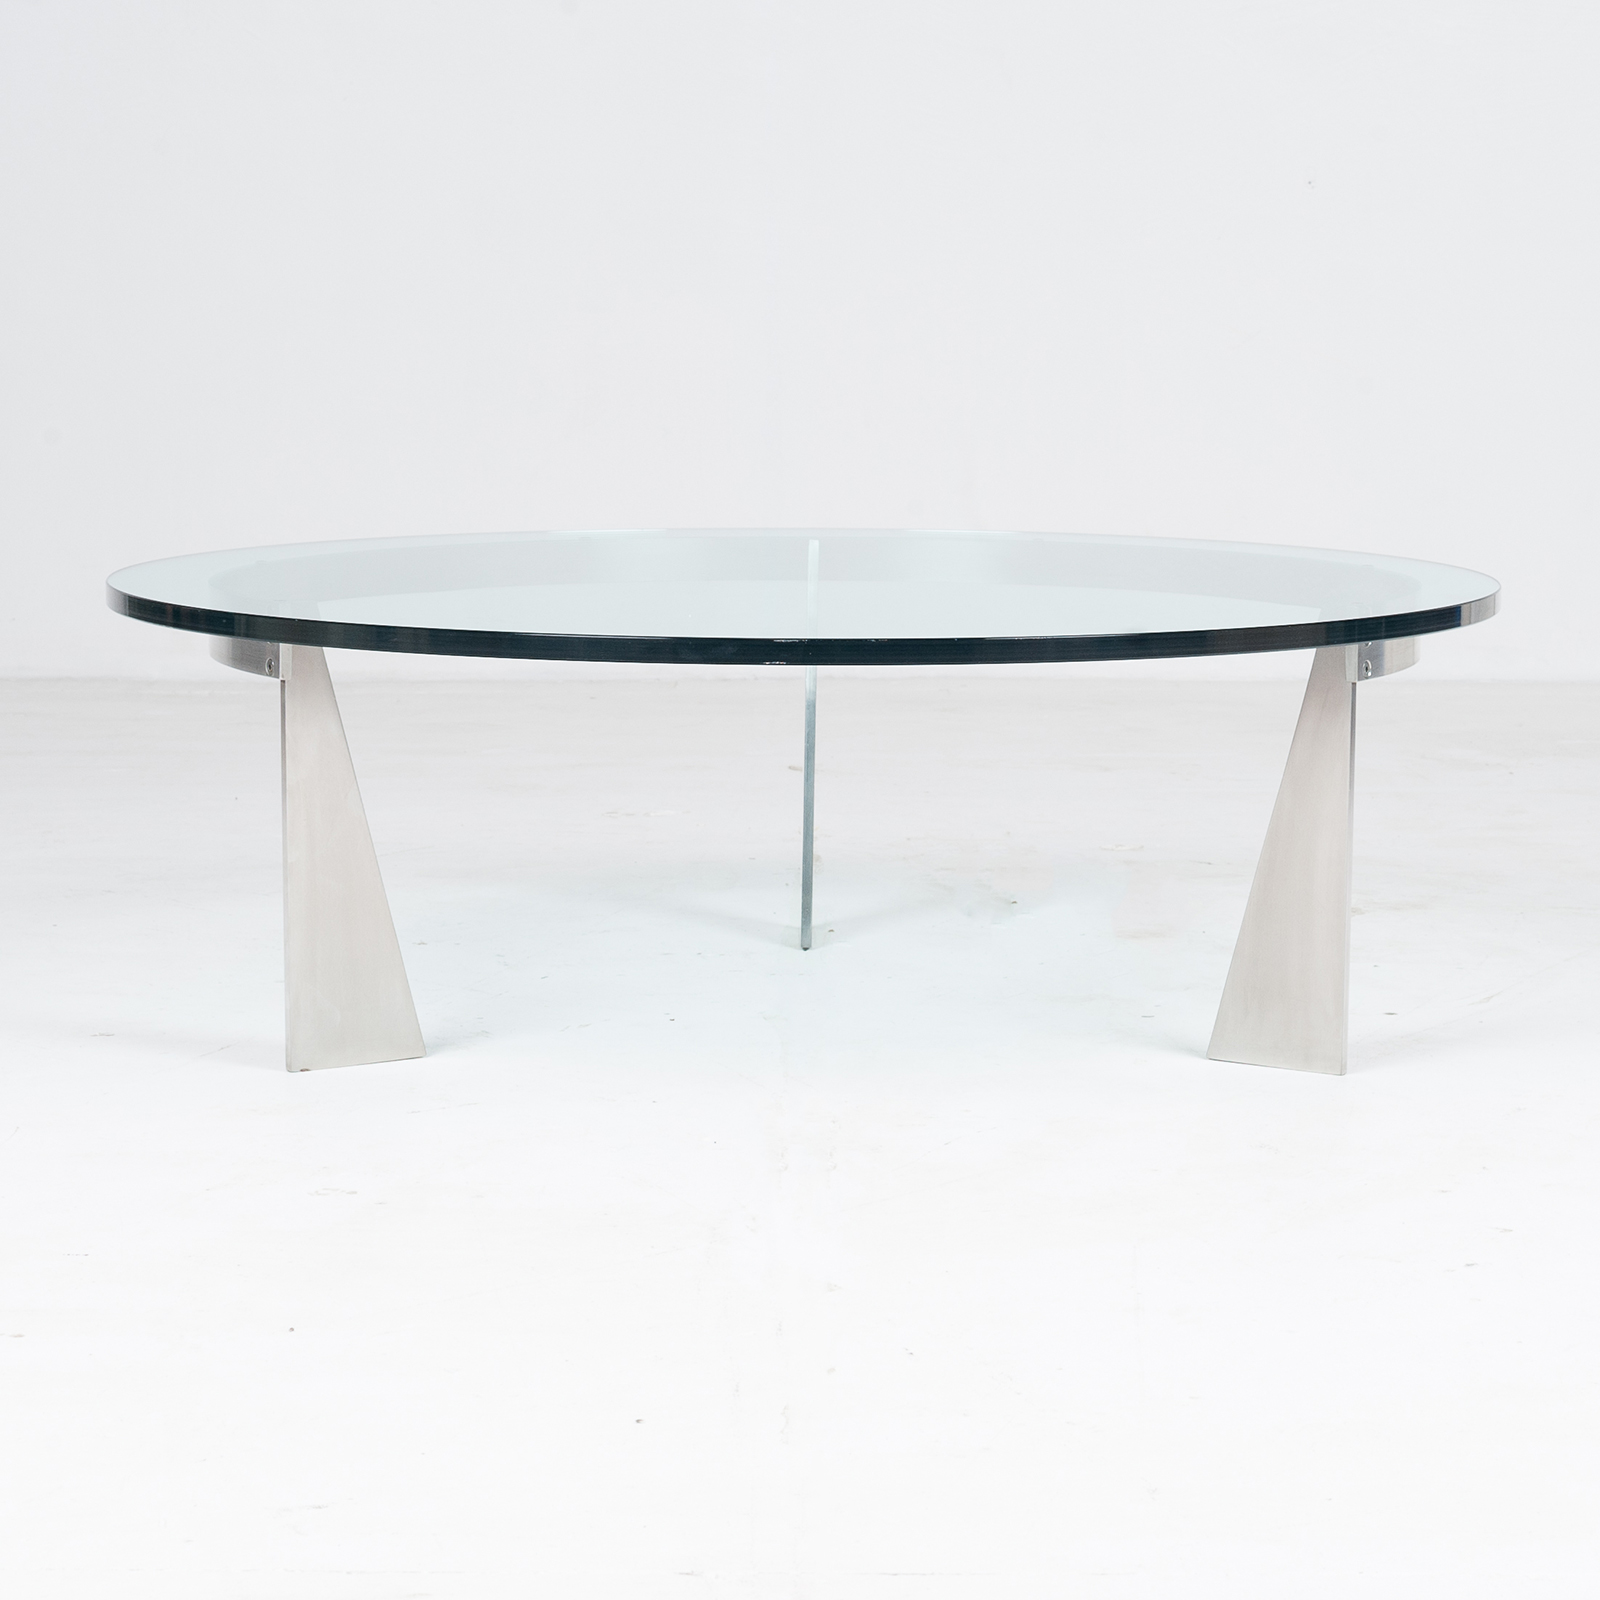 Round Coffee Table By Metaform, 1980s, The Netherlands 1